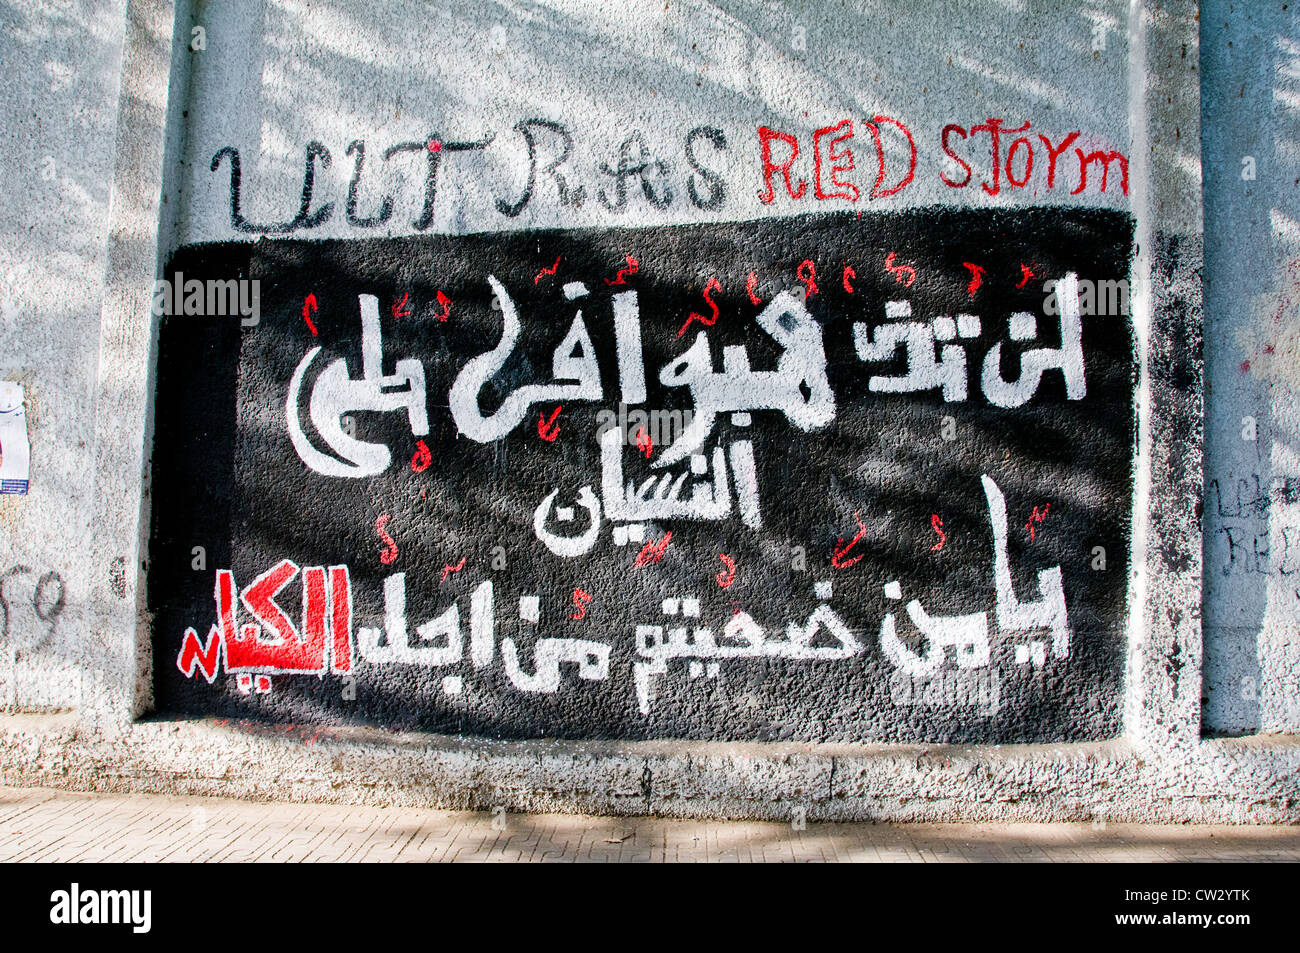 arab awakening and the revolution in egypt essay 10 reasons for the arab spring the root causes of the arab awakening in 2011 share flipboard email print issues  in egypt, new business elites collaborated with.